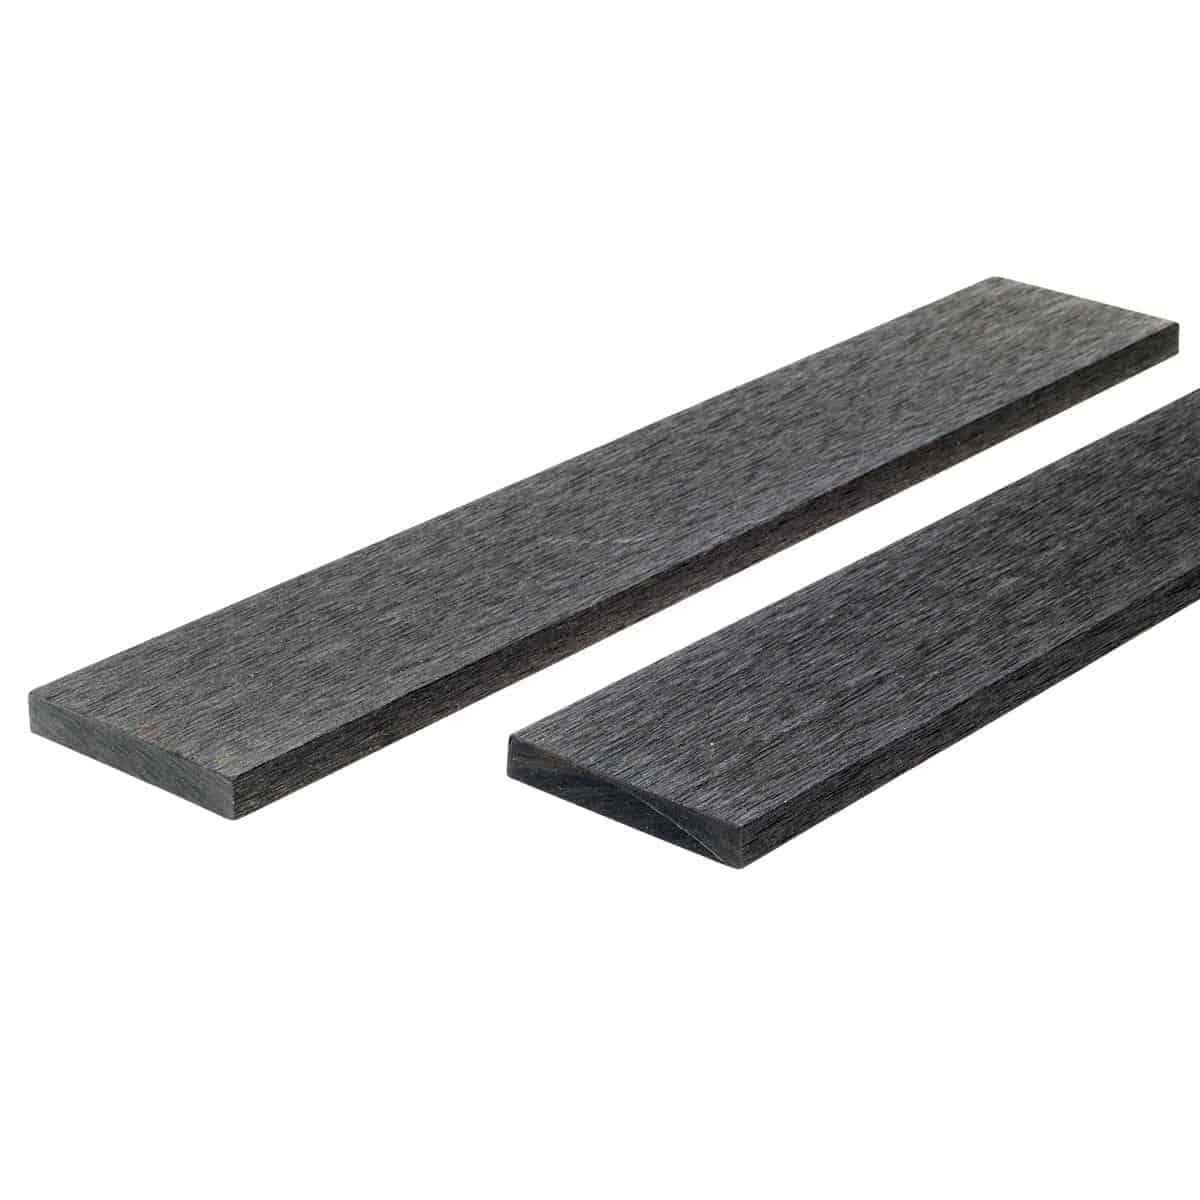 Composite Decking Trim